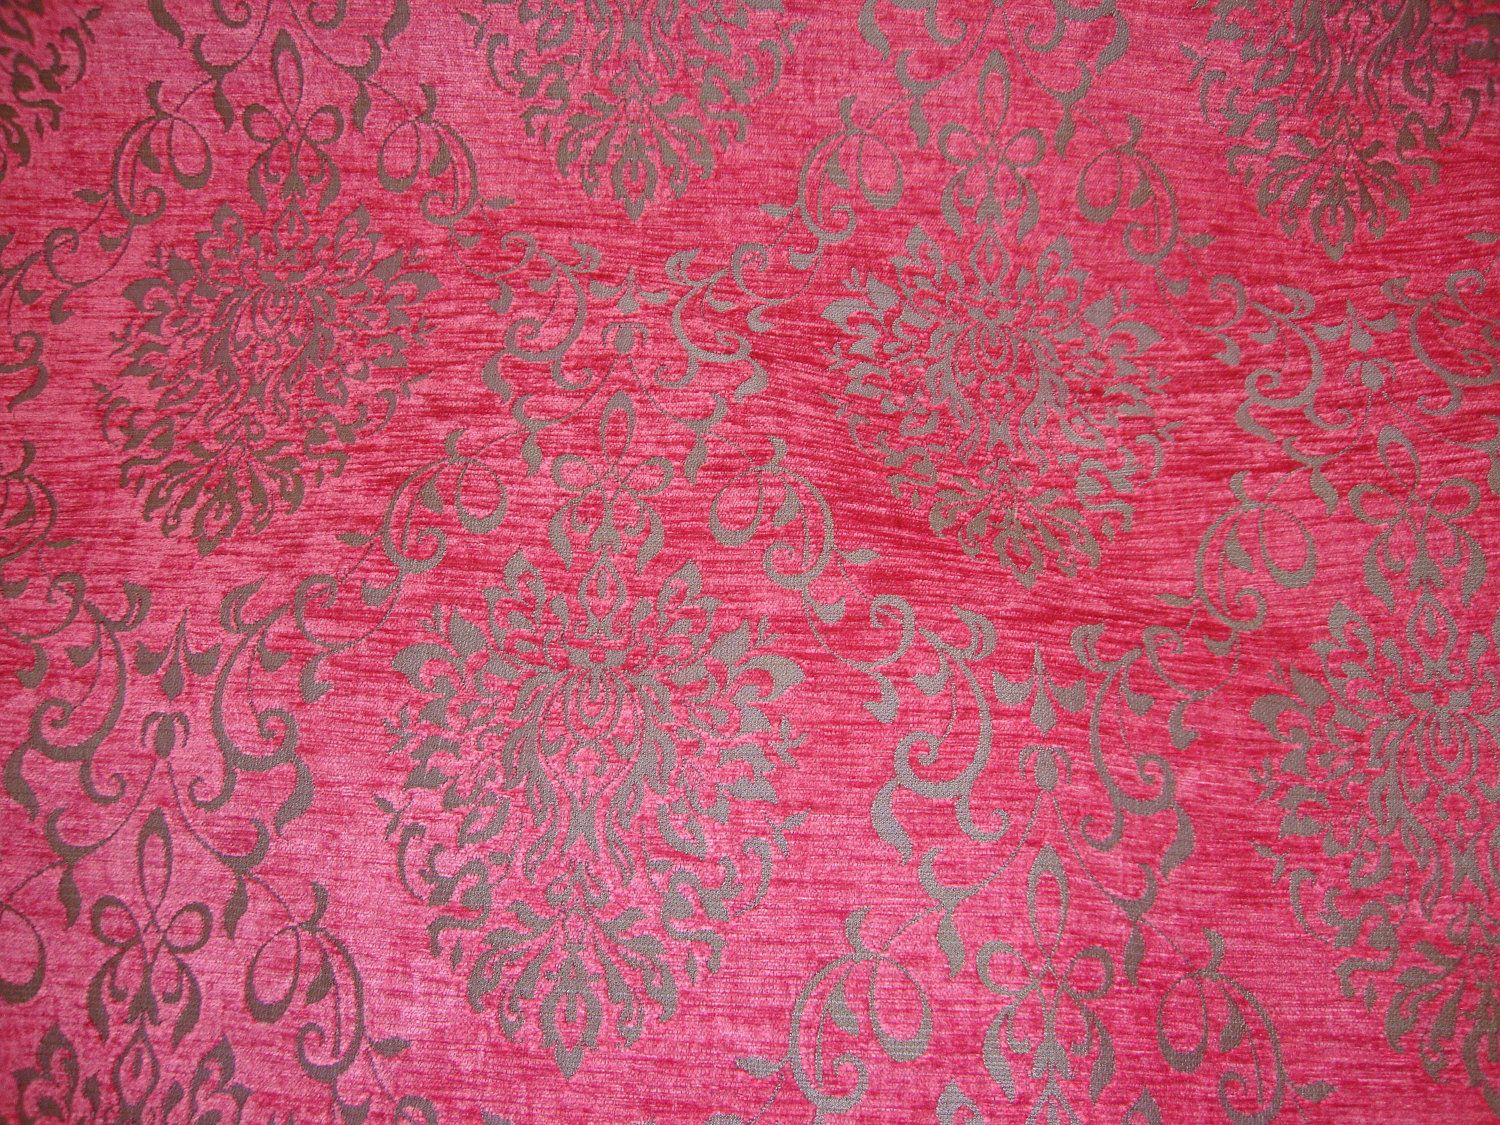 Pink Chenille Upholstery Fabric Pink Reversible Chenille Damask